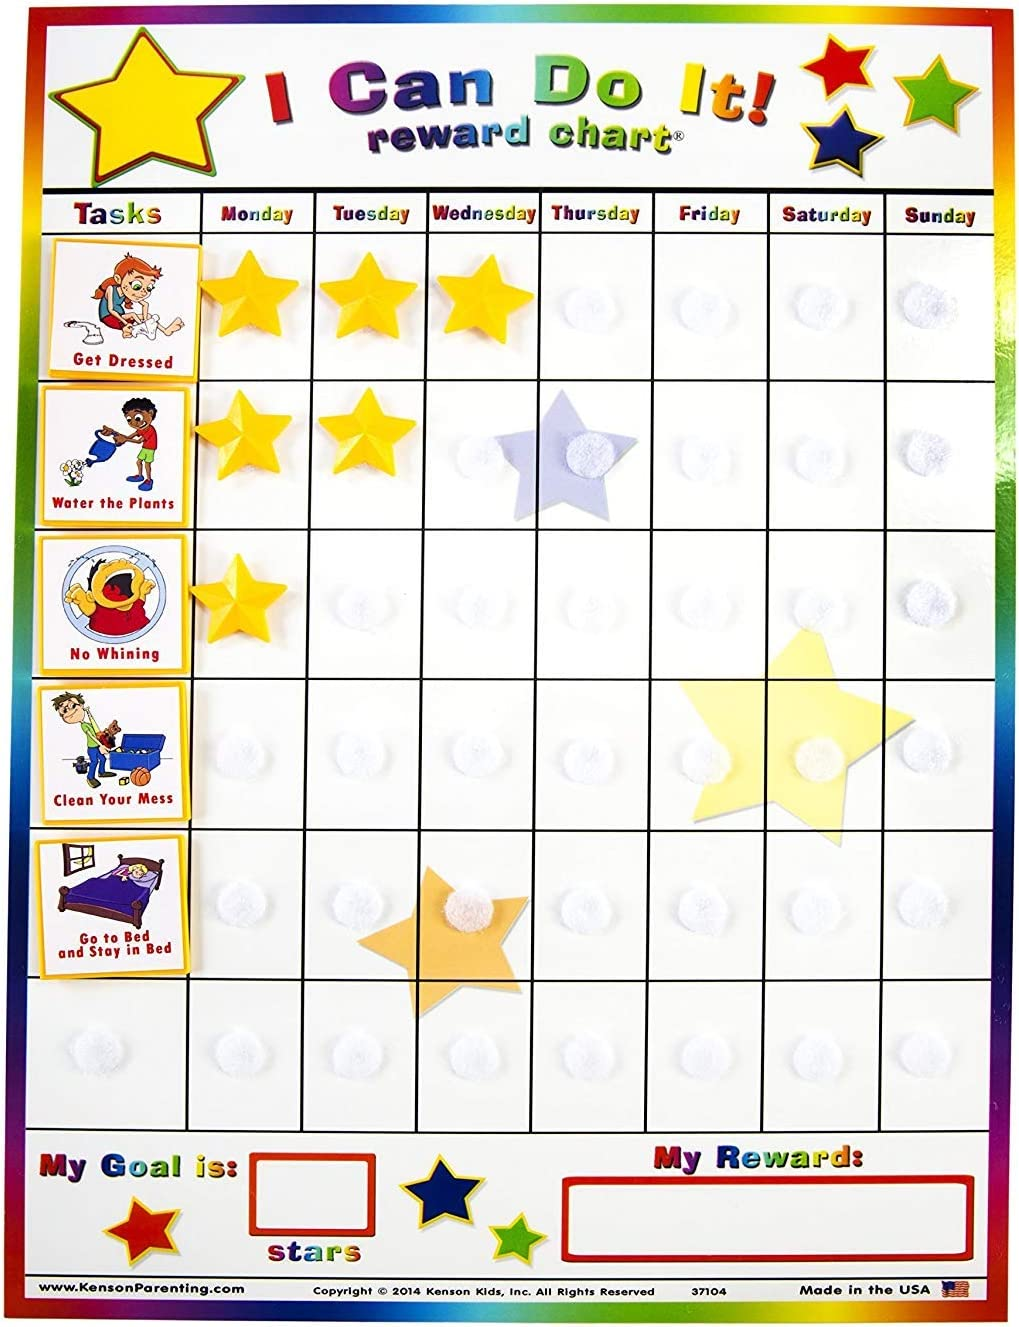 11 X 15.5-Inch-Limited edition I Can Do It Reward and Responsibility Chart